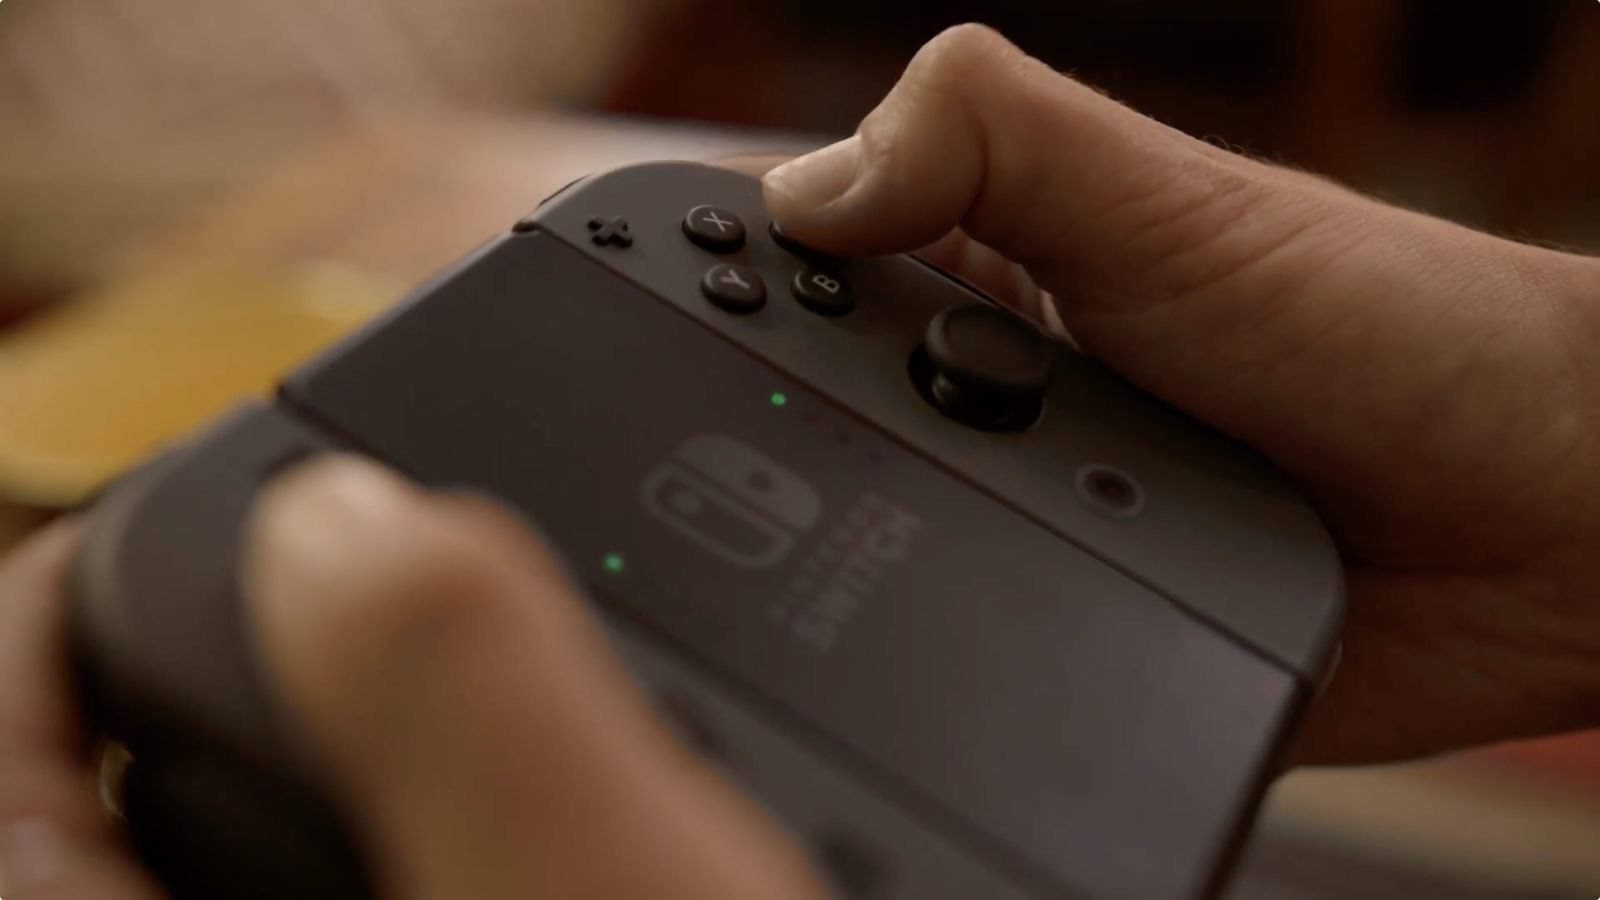 This is what the Nintendo Switch looks like